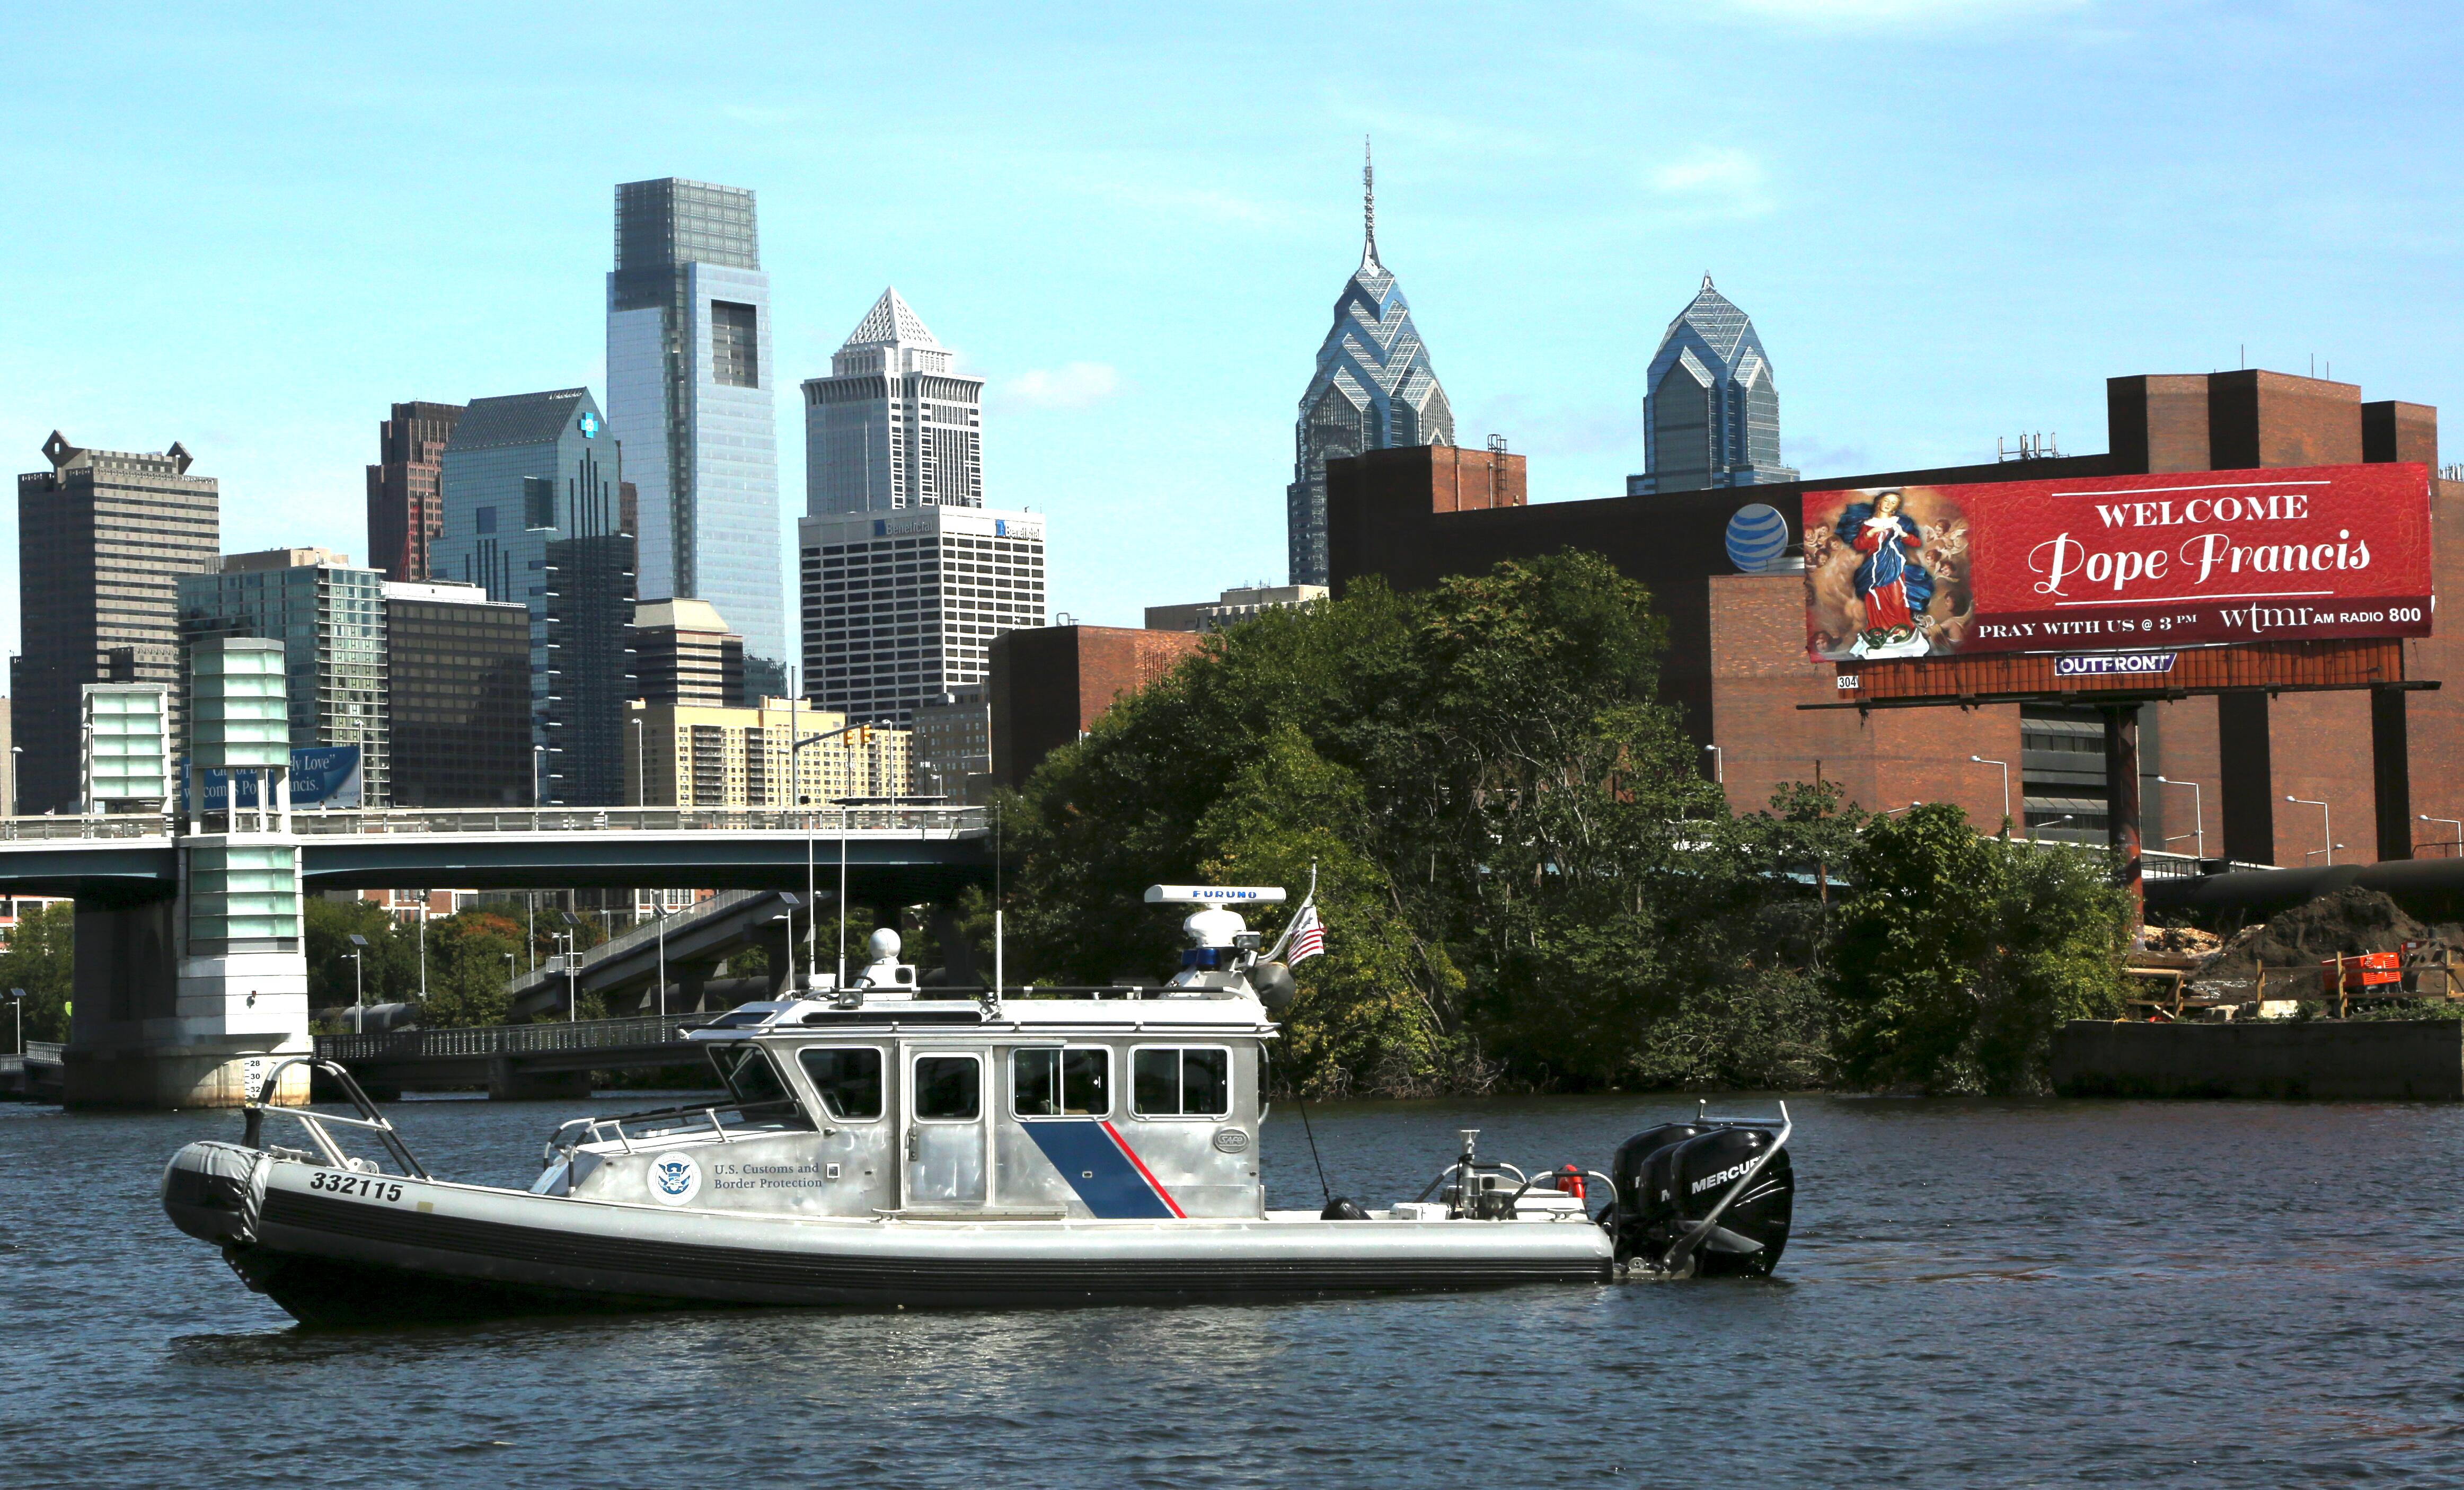 Marine Interdictions Agents patrol the Schuykill River in Philadelphia, PA.